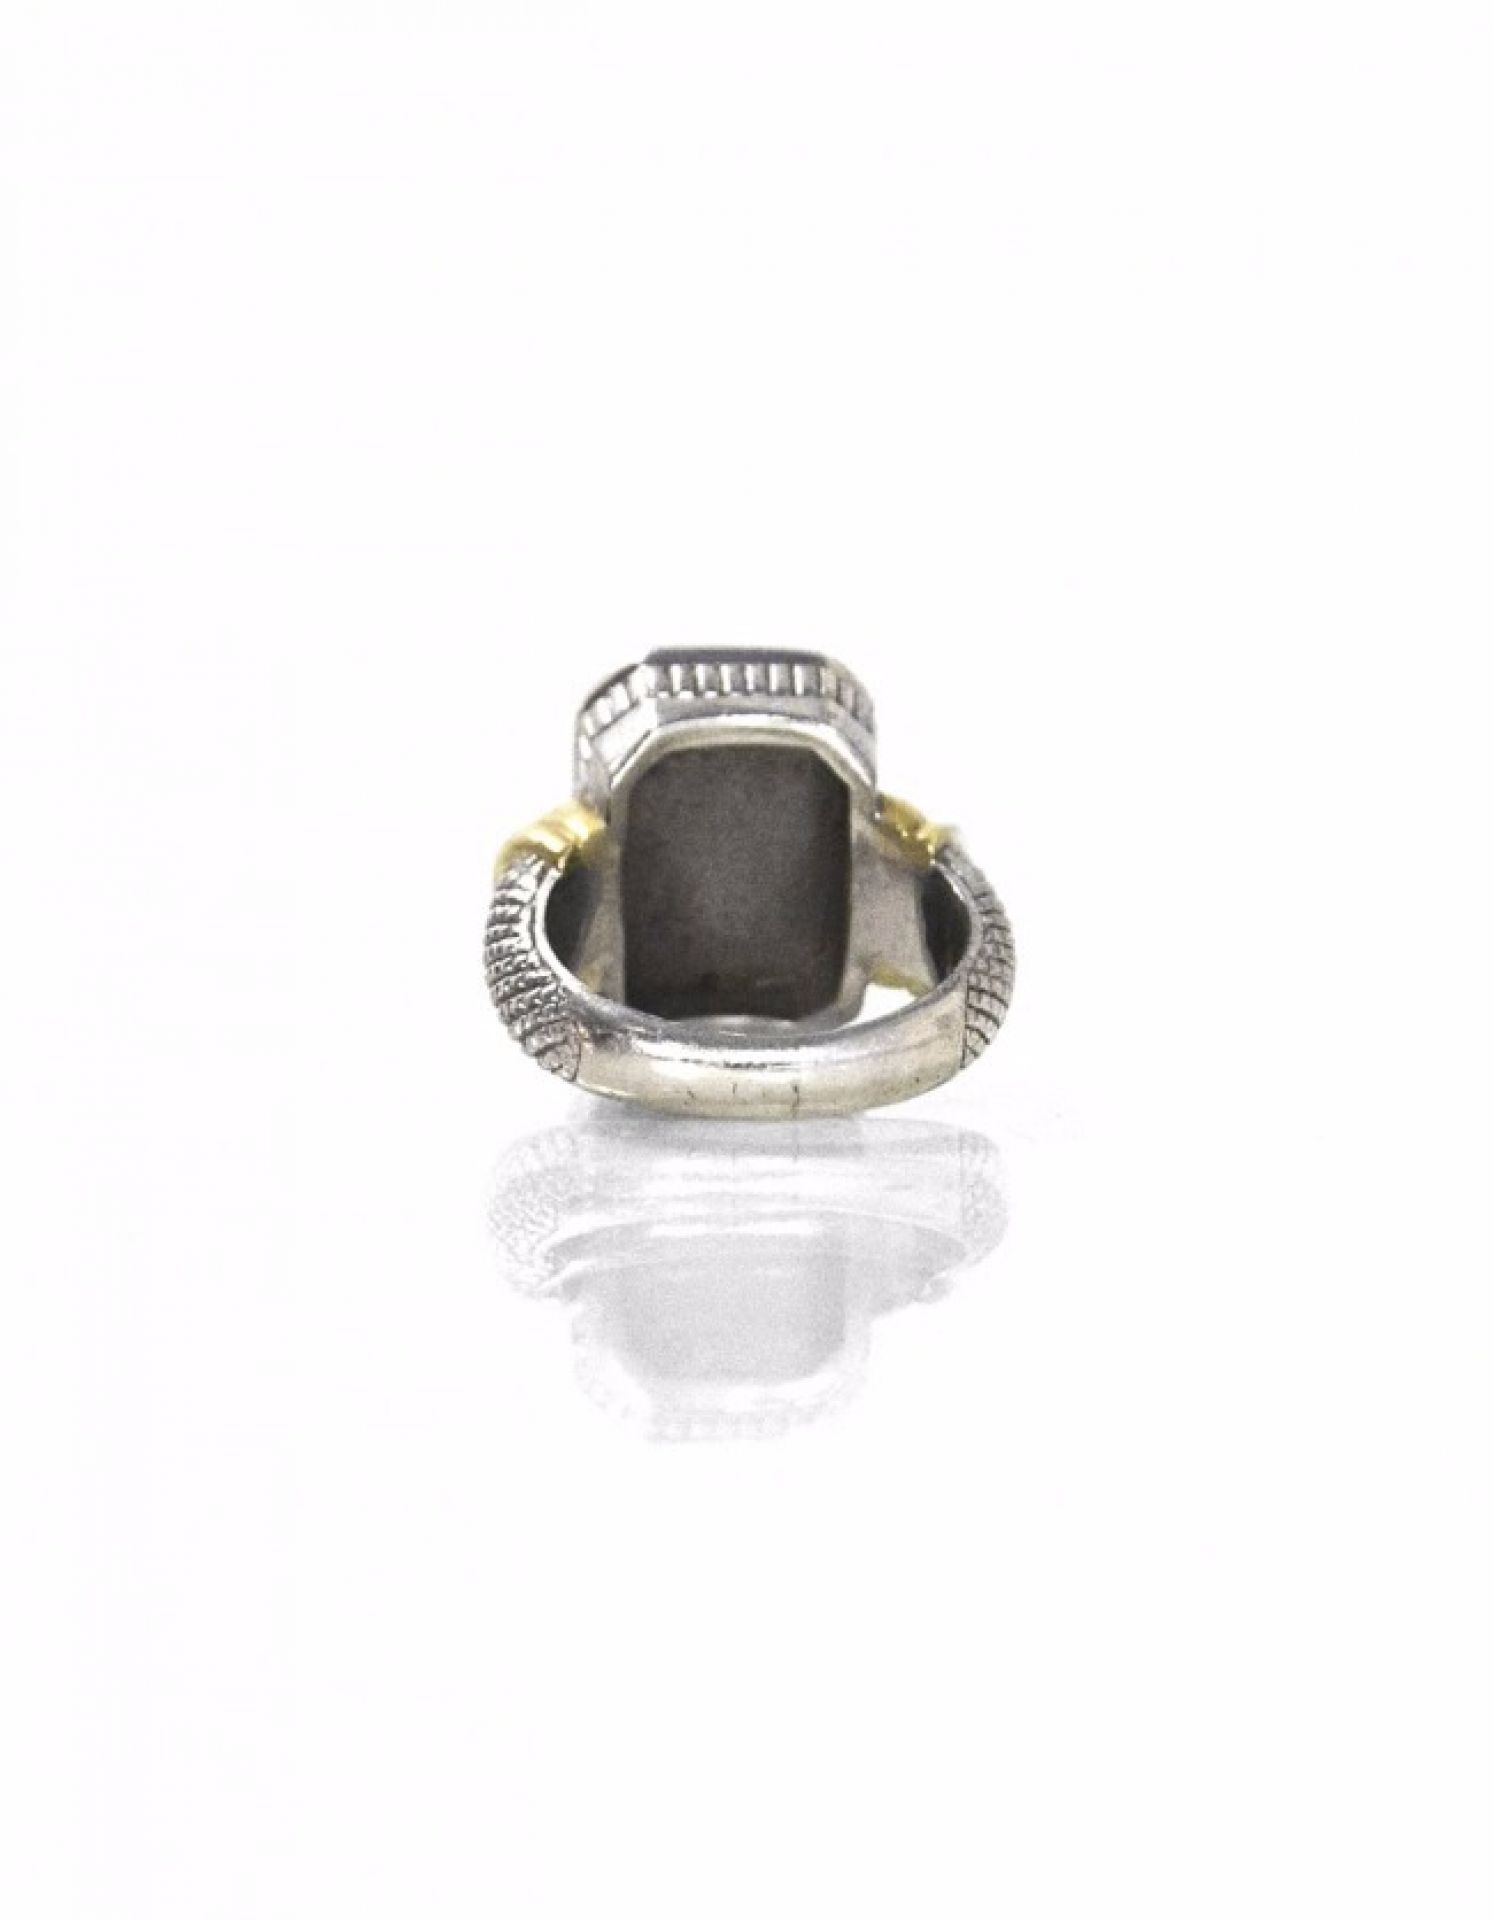 Judith Ripka Sterling & Gold Intaglio Ring Sz 7